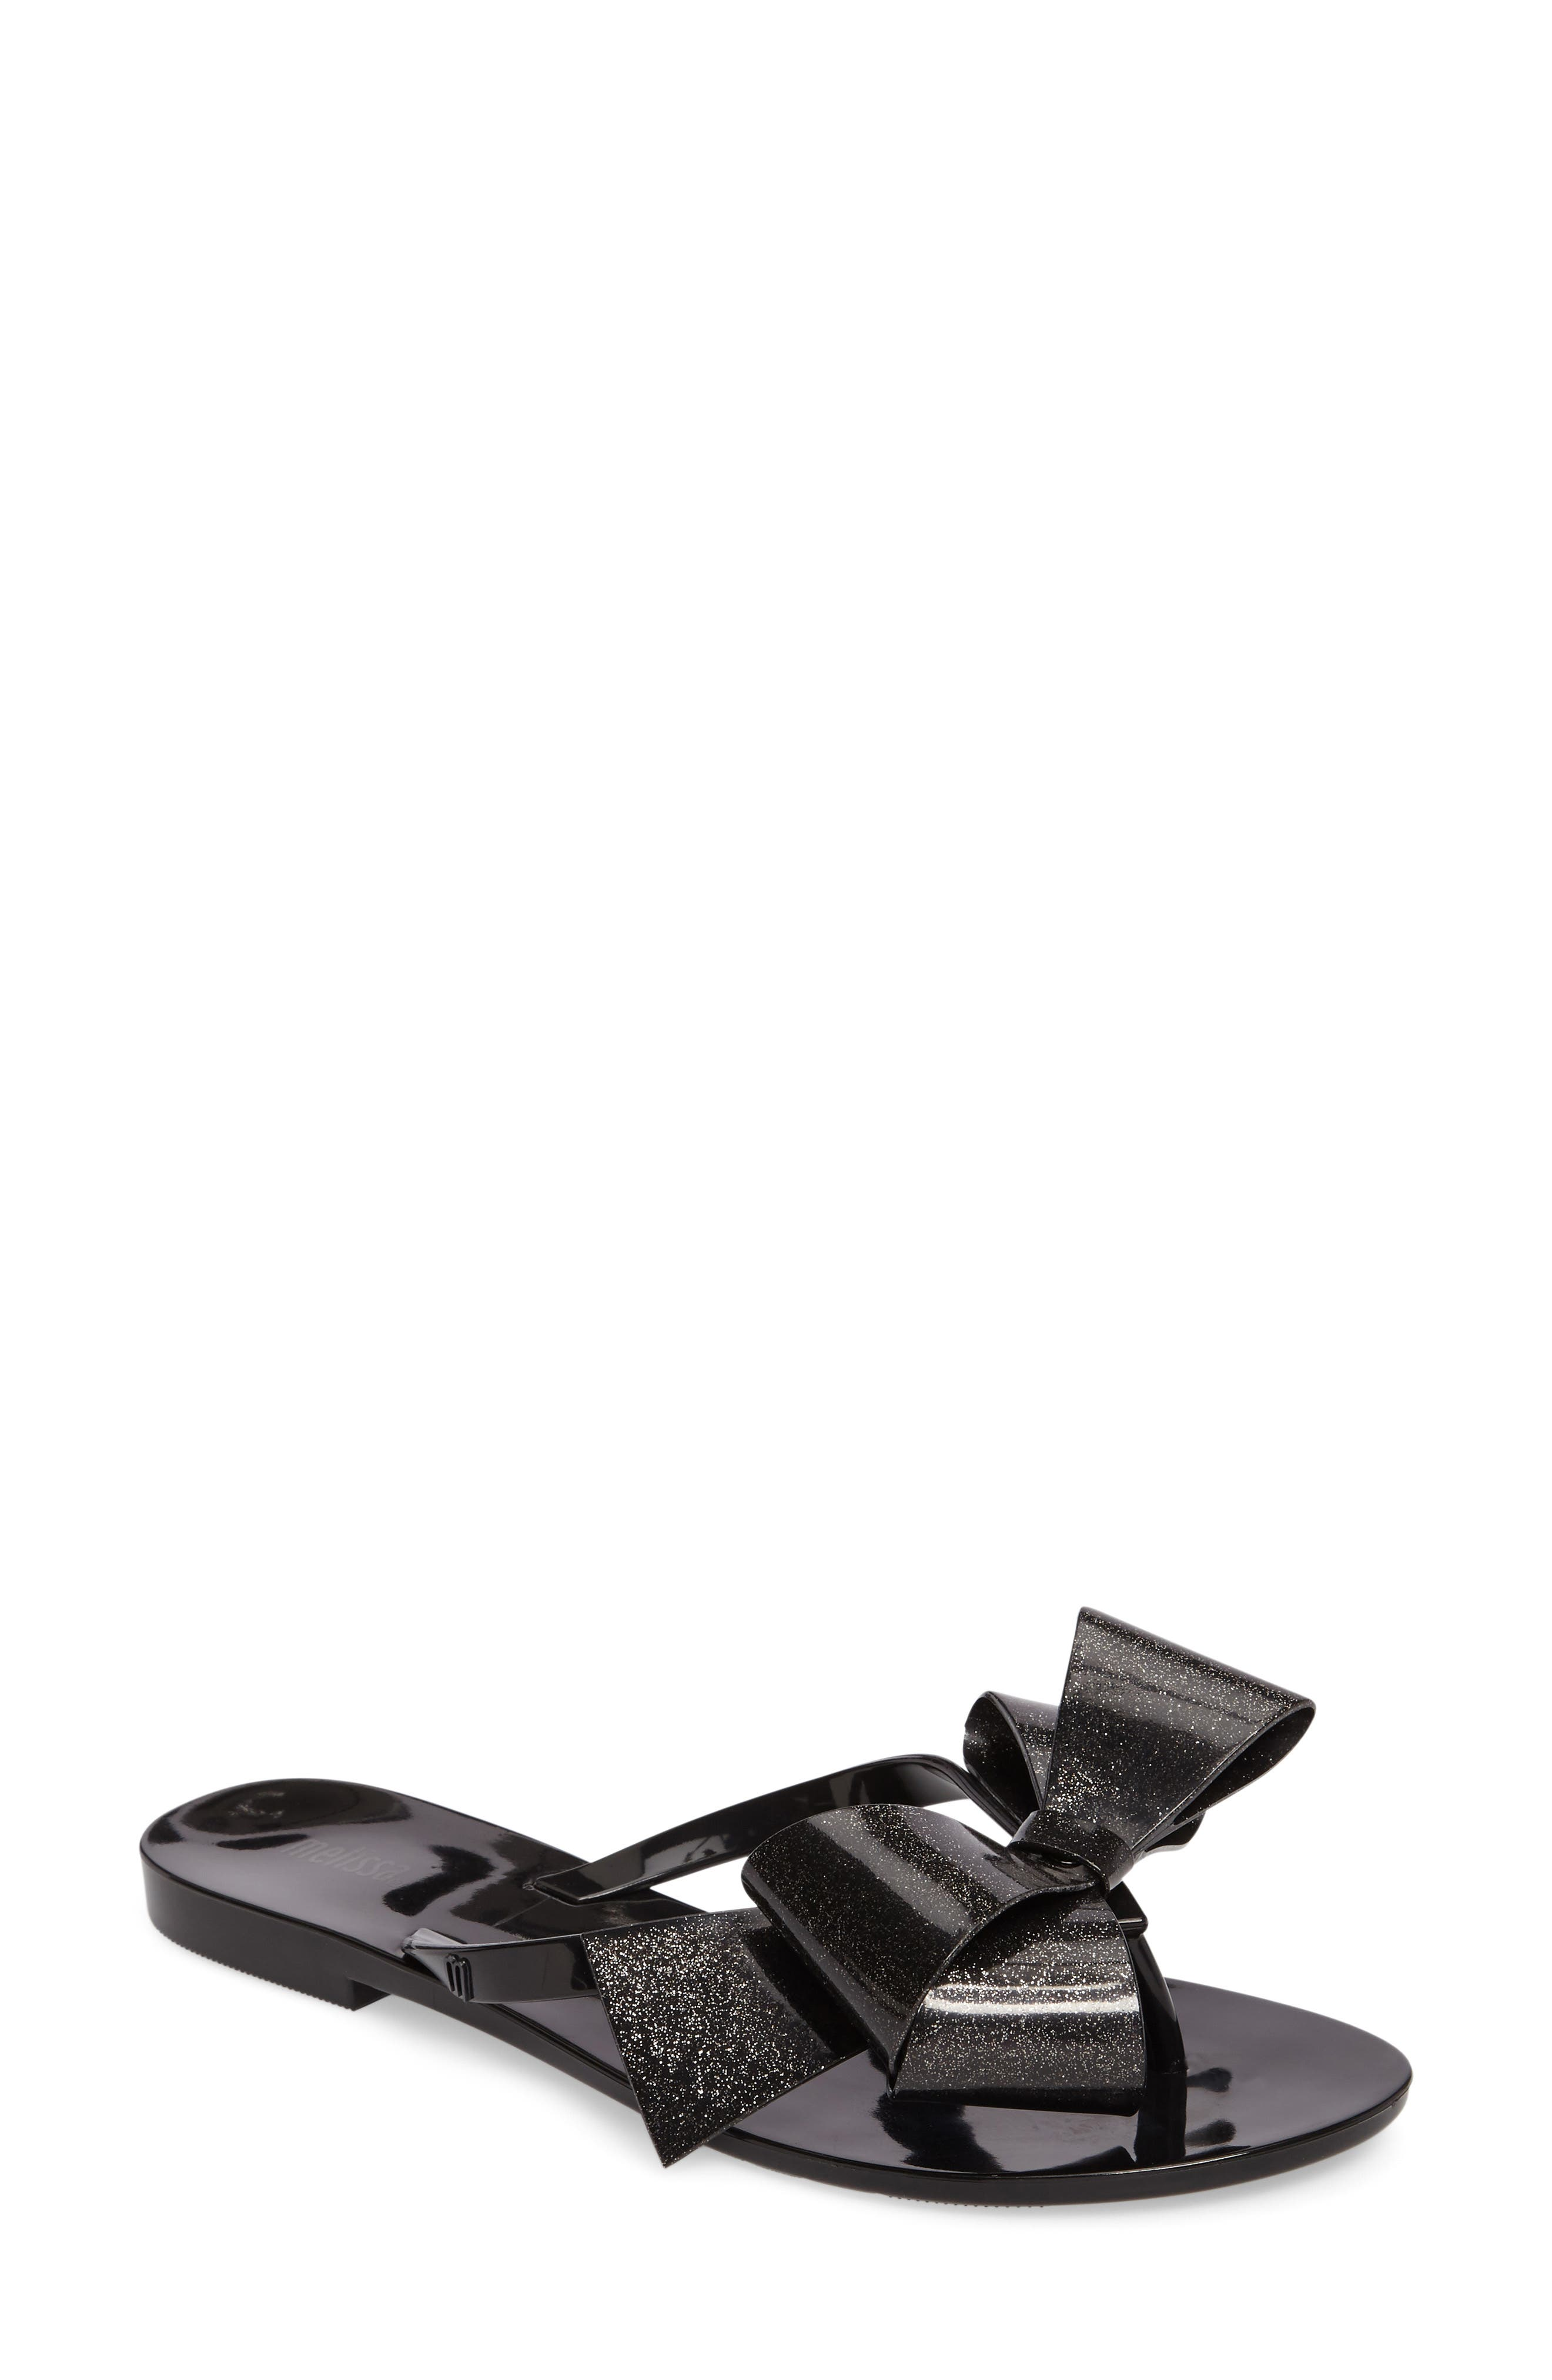 Alternate Image 1 Selected - Melissa Harmonic Bow III Flip Flop (Women)